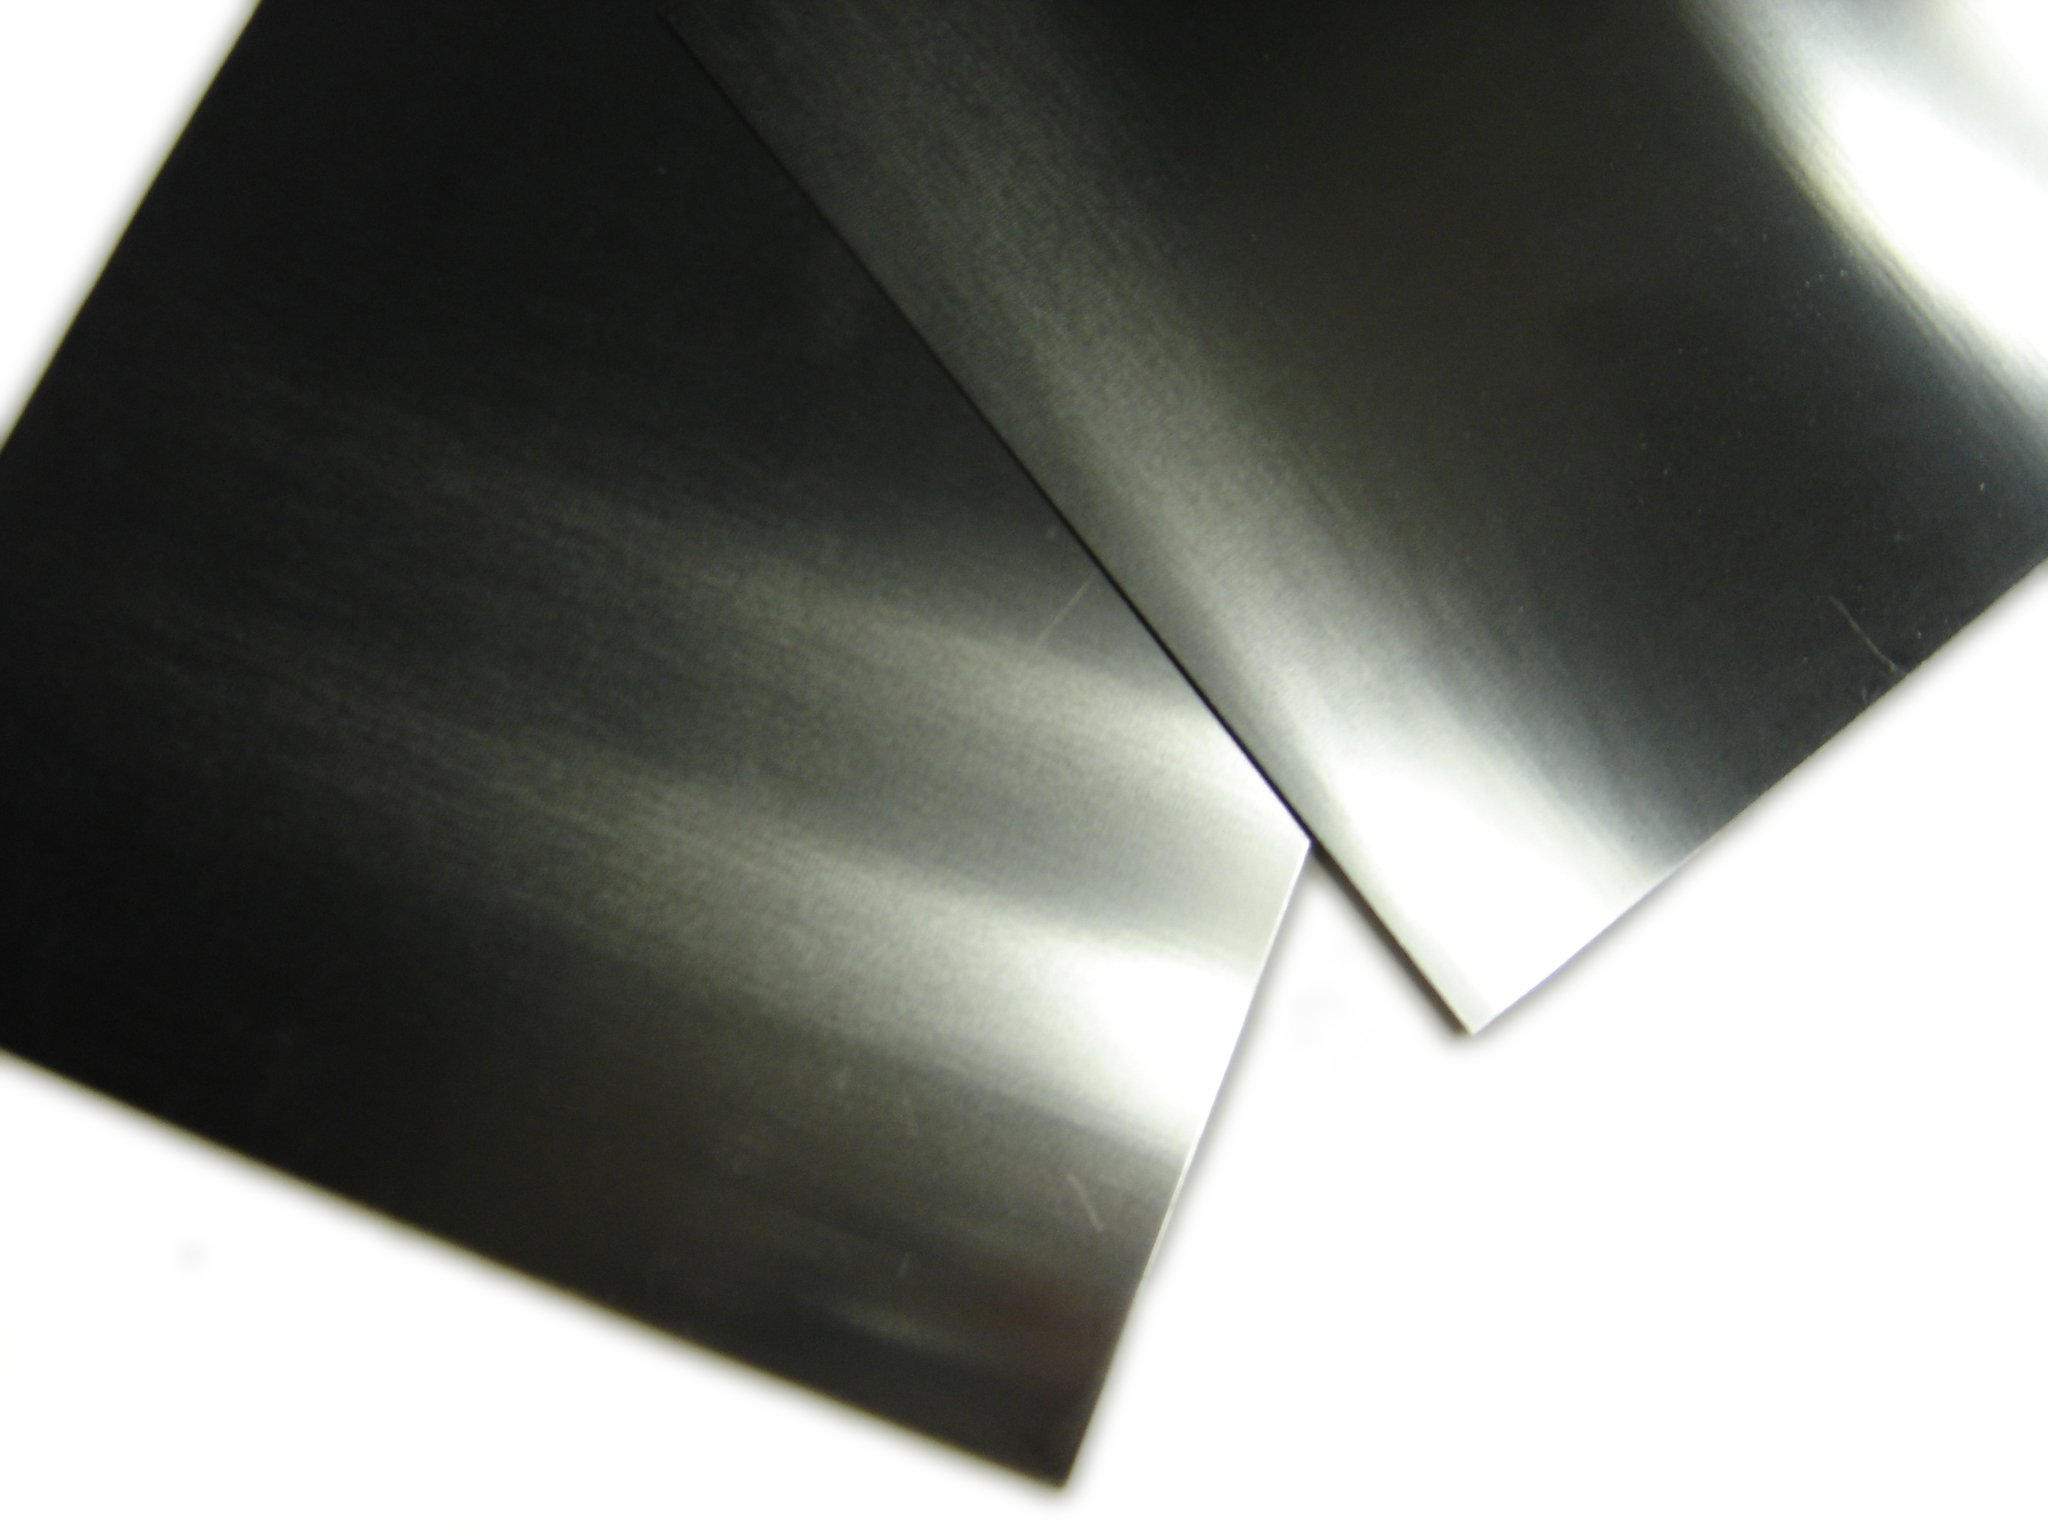 Molybdenum Sheet/Plate 6''x6''x0.04'', Polished by Torrey Hills Technologies